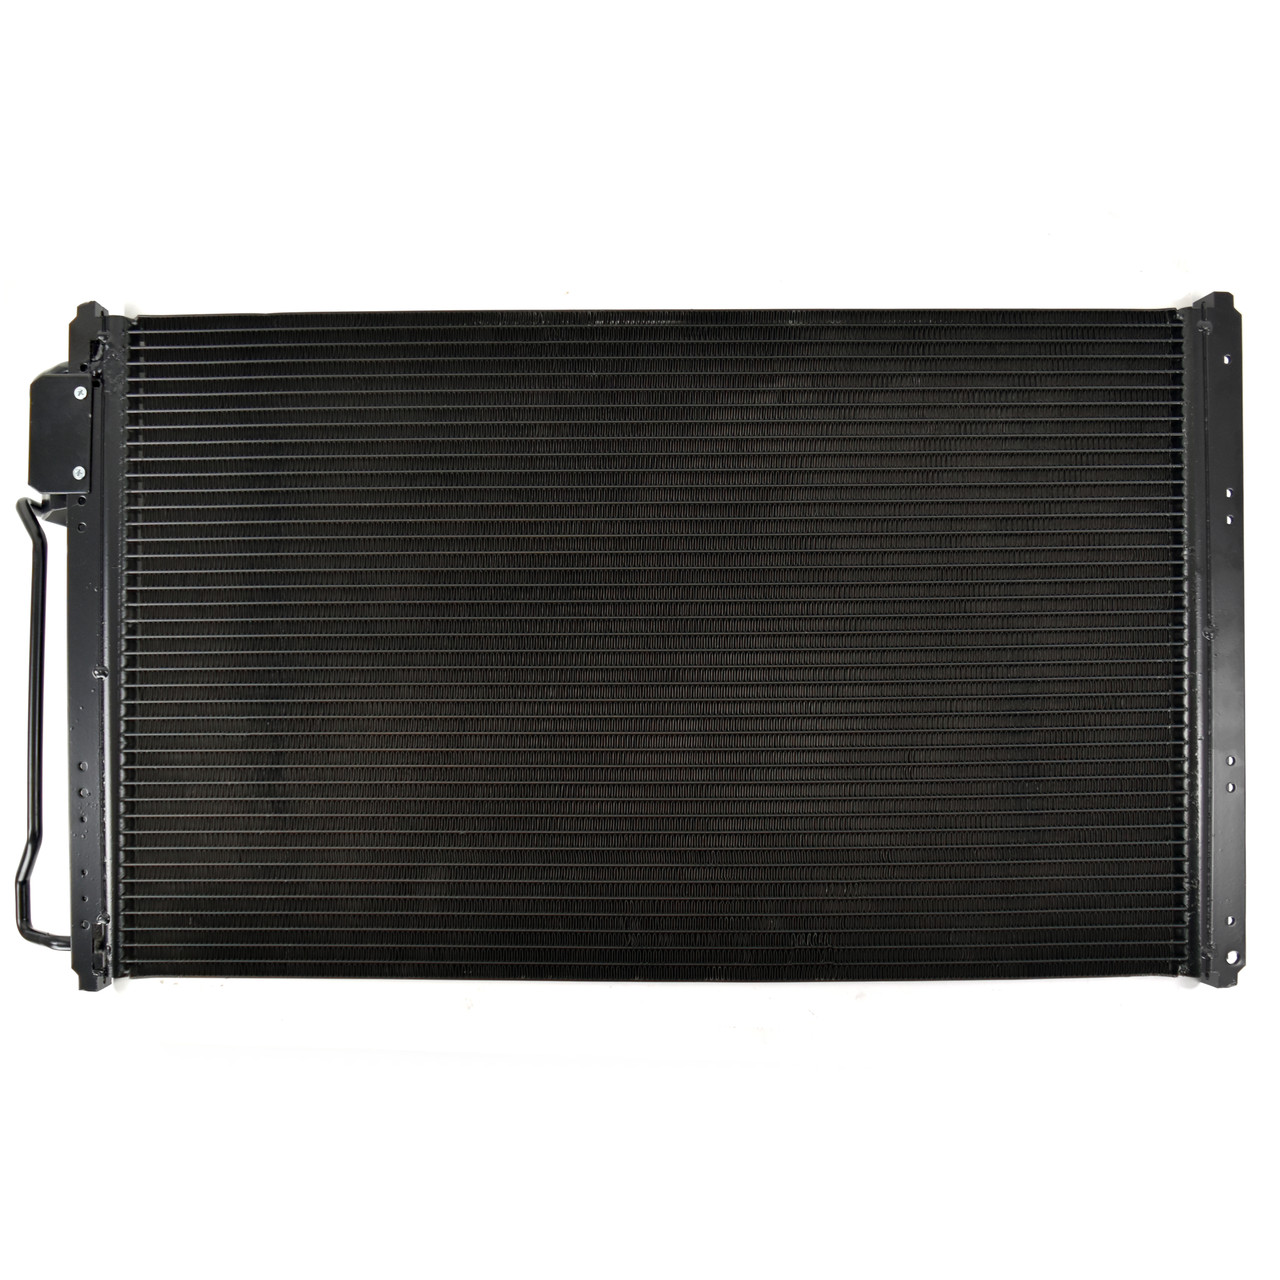 eClassics 1996-1998 Ford Mustang A/C Air Conditioning Condenser for 3.8 V6 or 4.6 V8